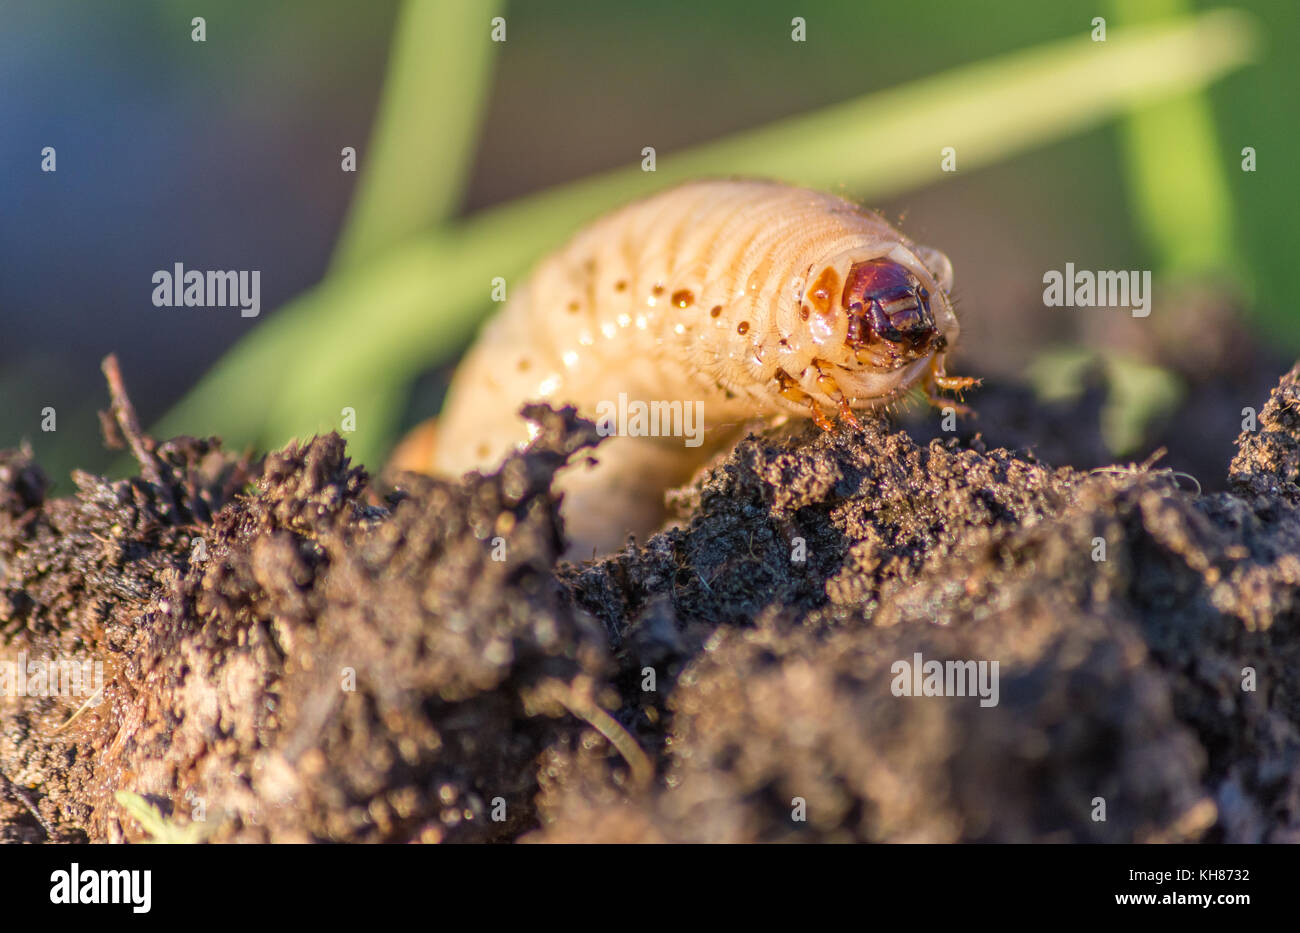 Compost Worm Stock Photos \u0026 Compost Worm Stock Images - Alamy